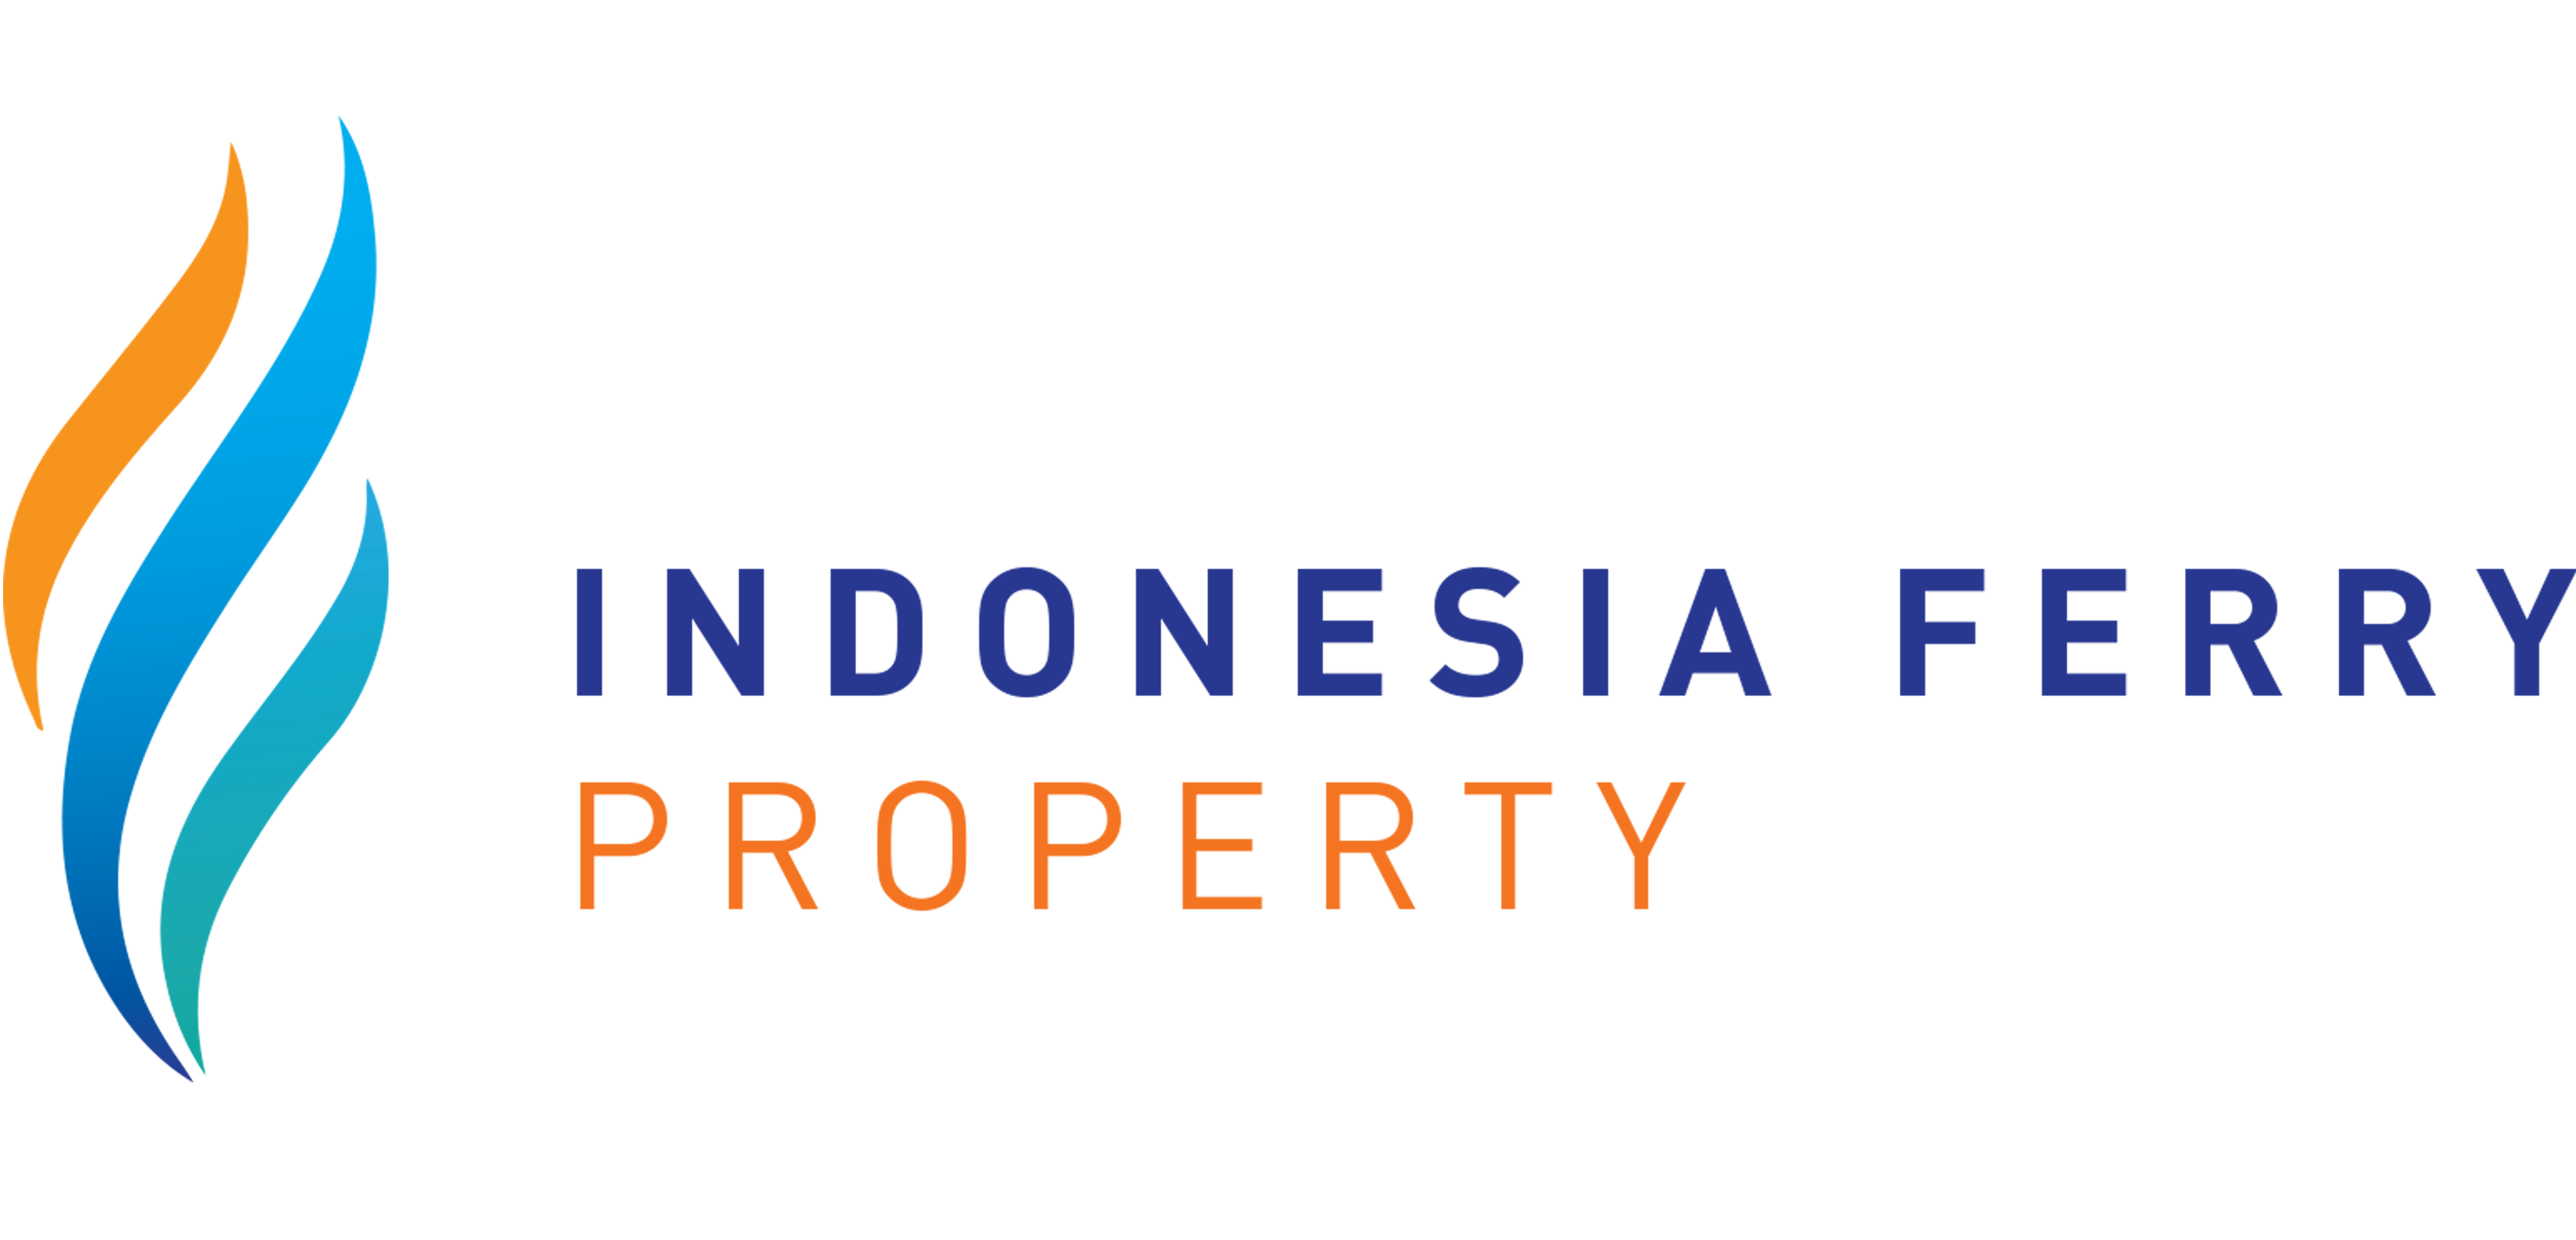 Indonesia Ferry Property